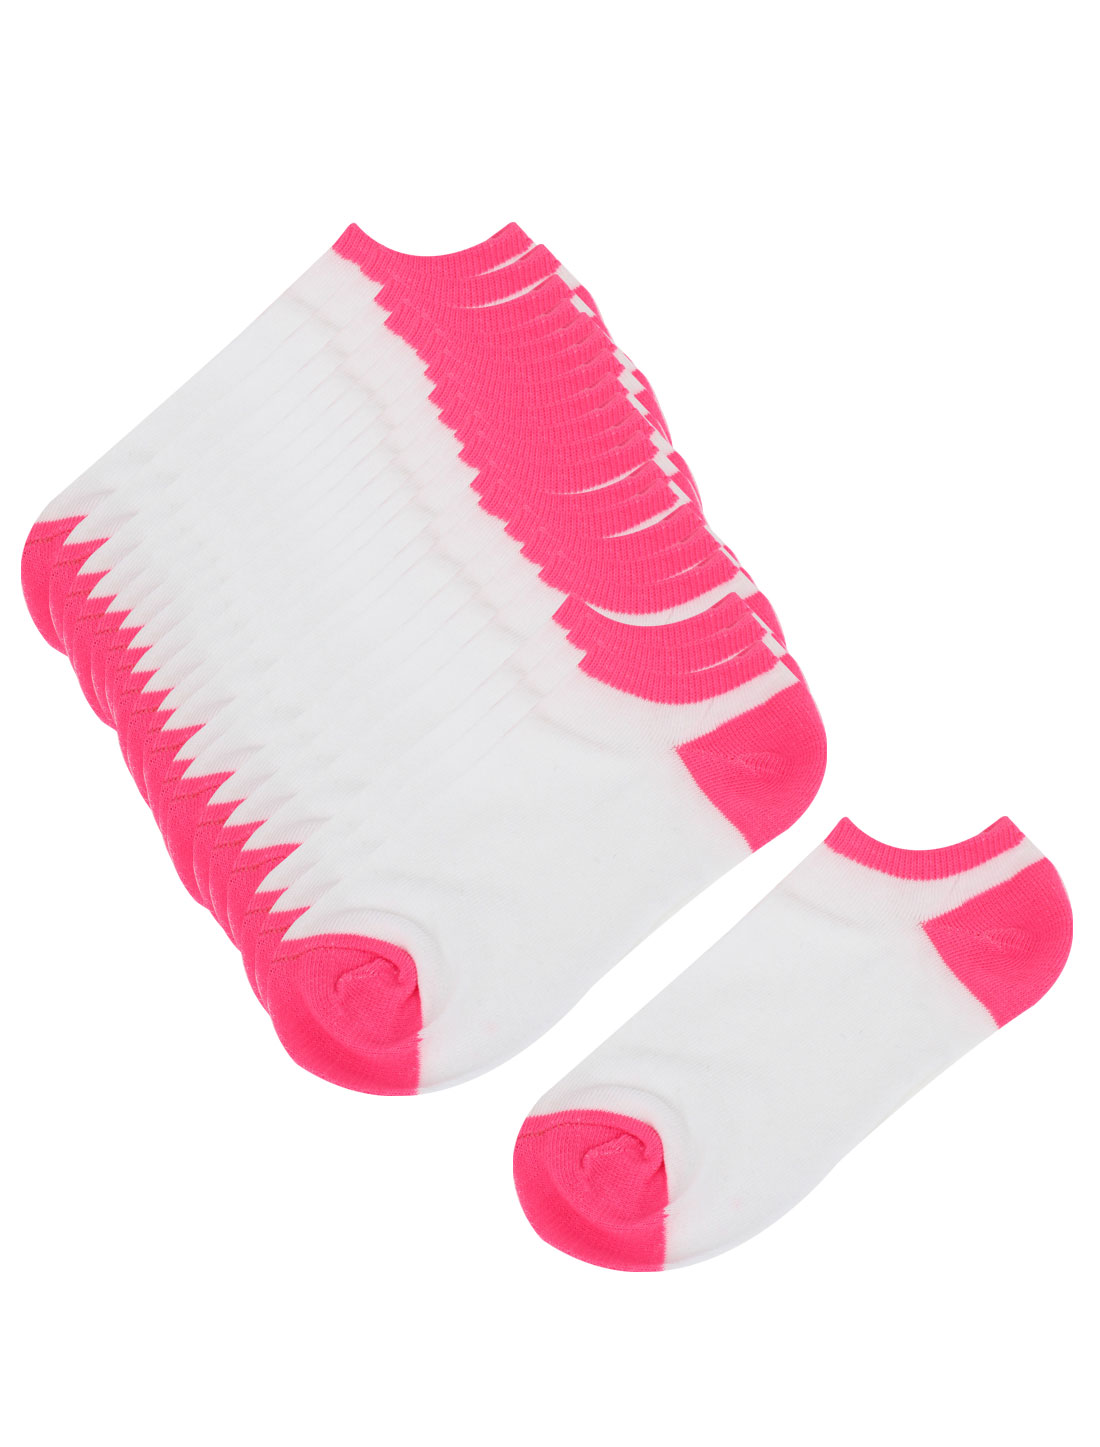 Women Warm Stretchy Cuff Short Low Cut Ankle Hosiery Socks White Fuchsia 10 Pair